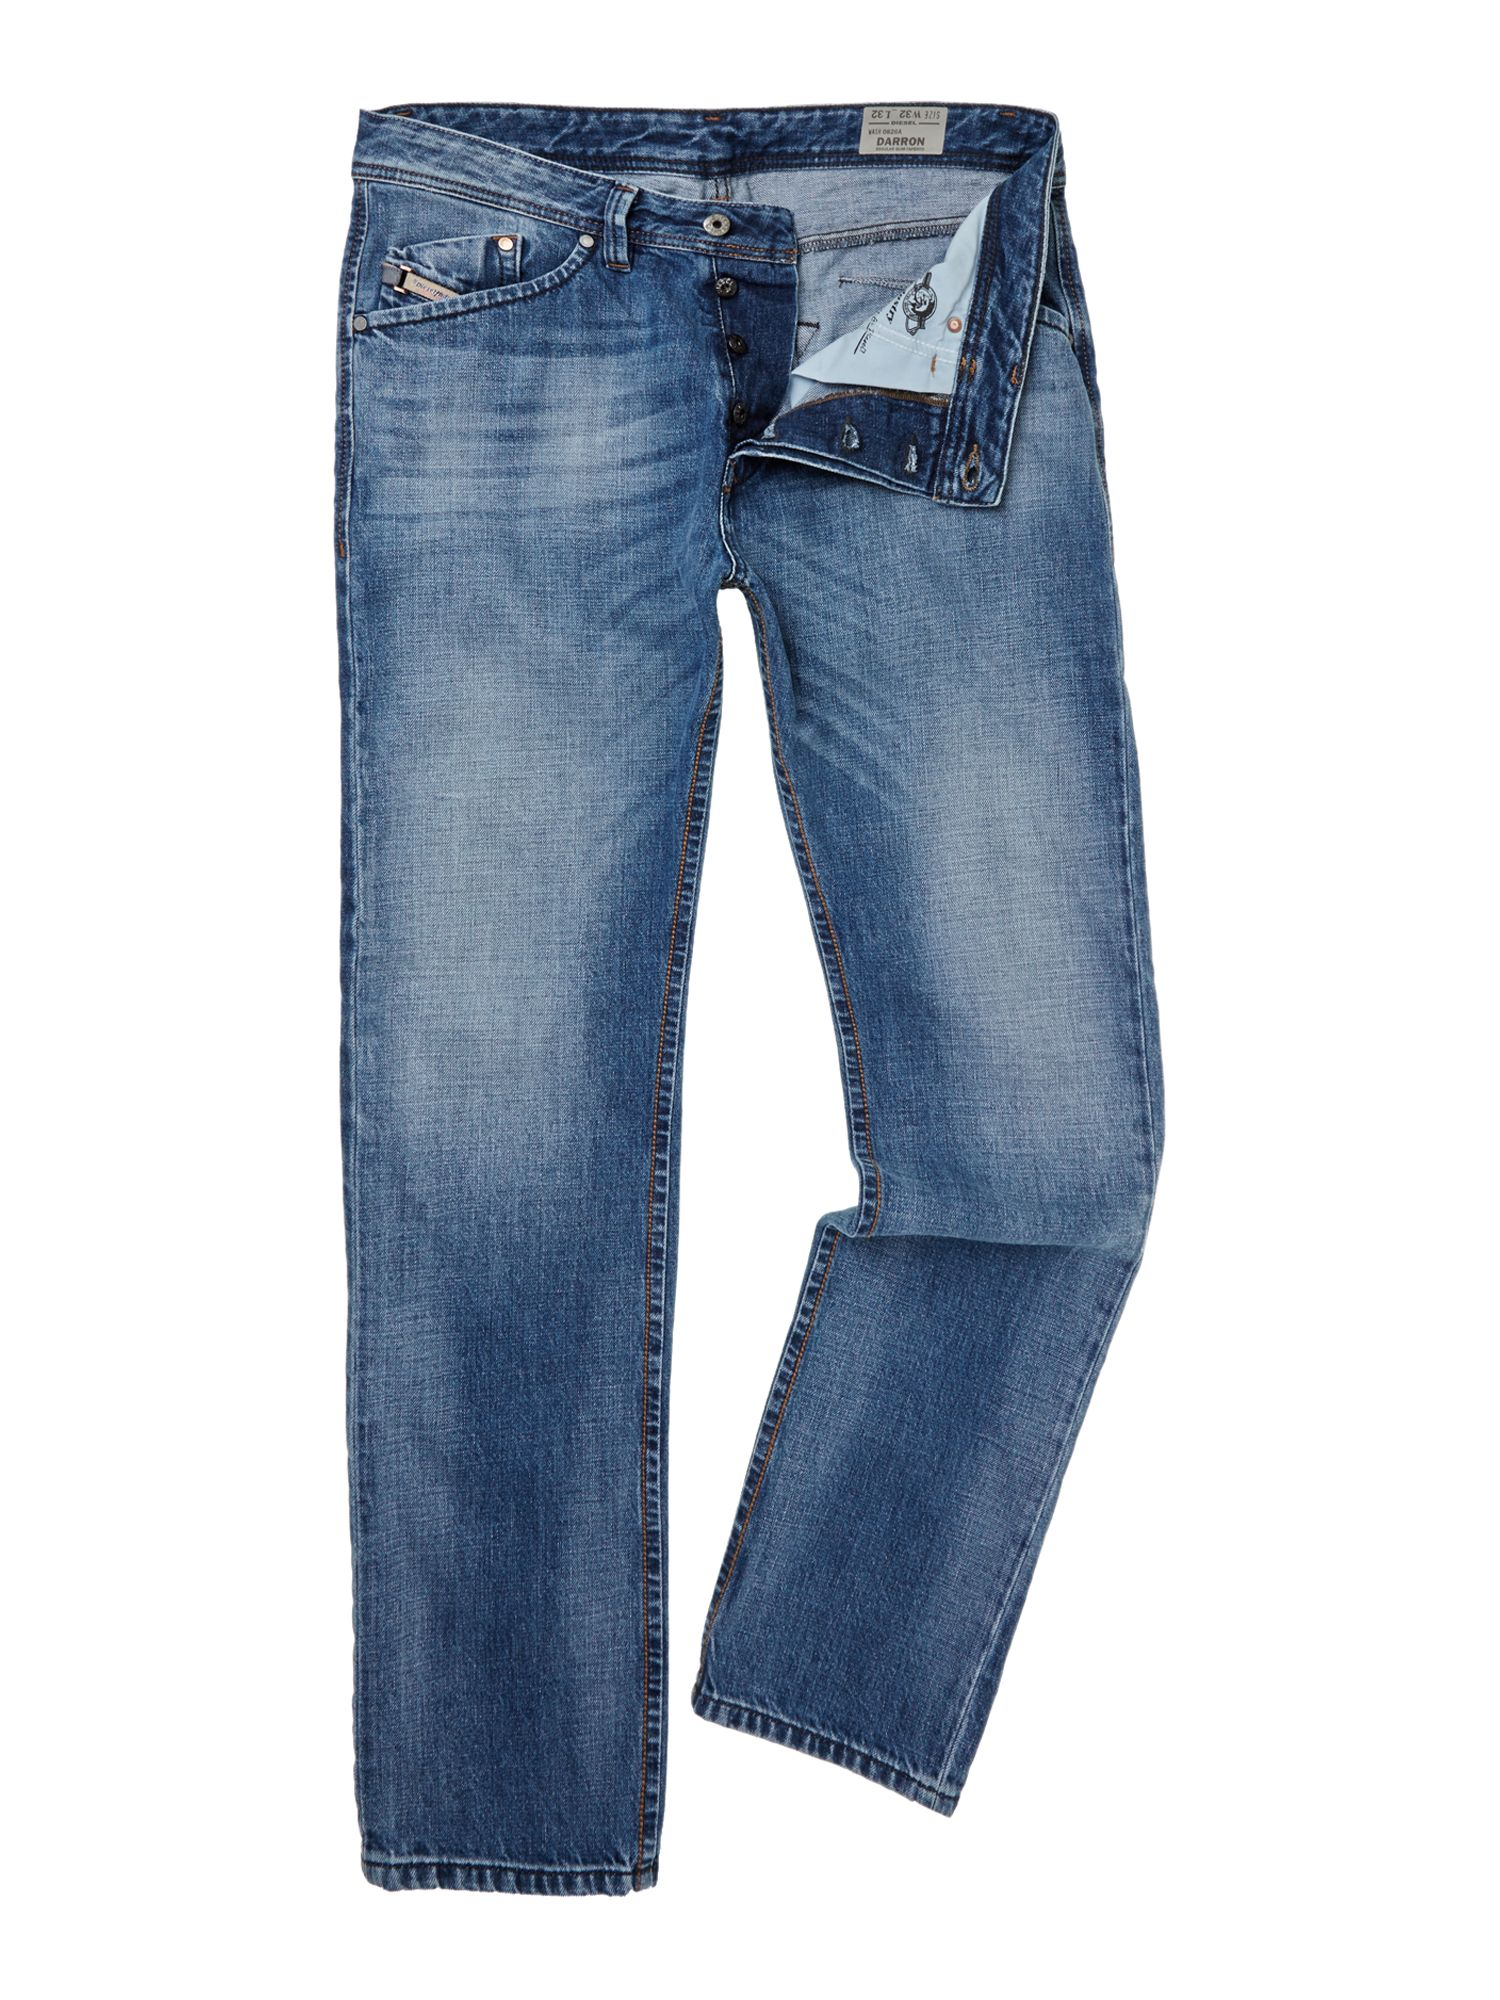 Darron 826A mid wash slim fit jean